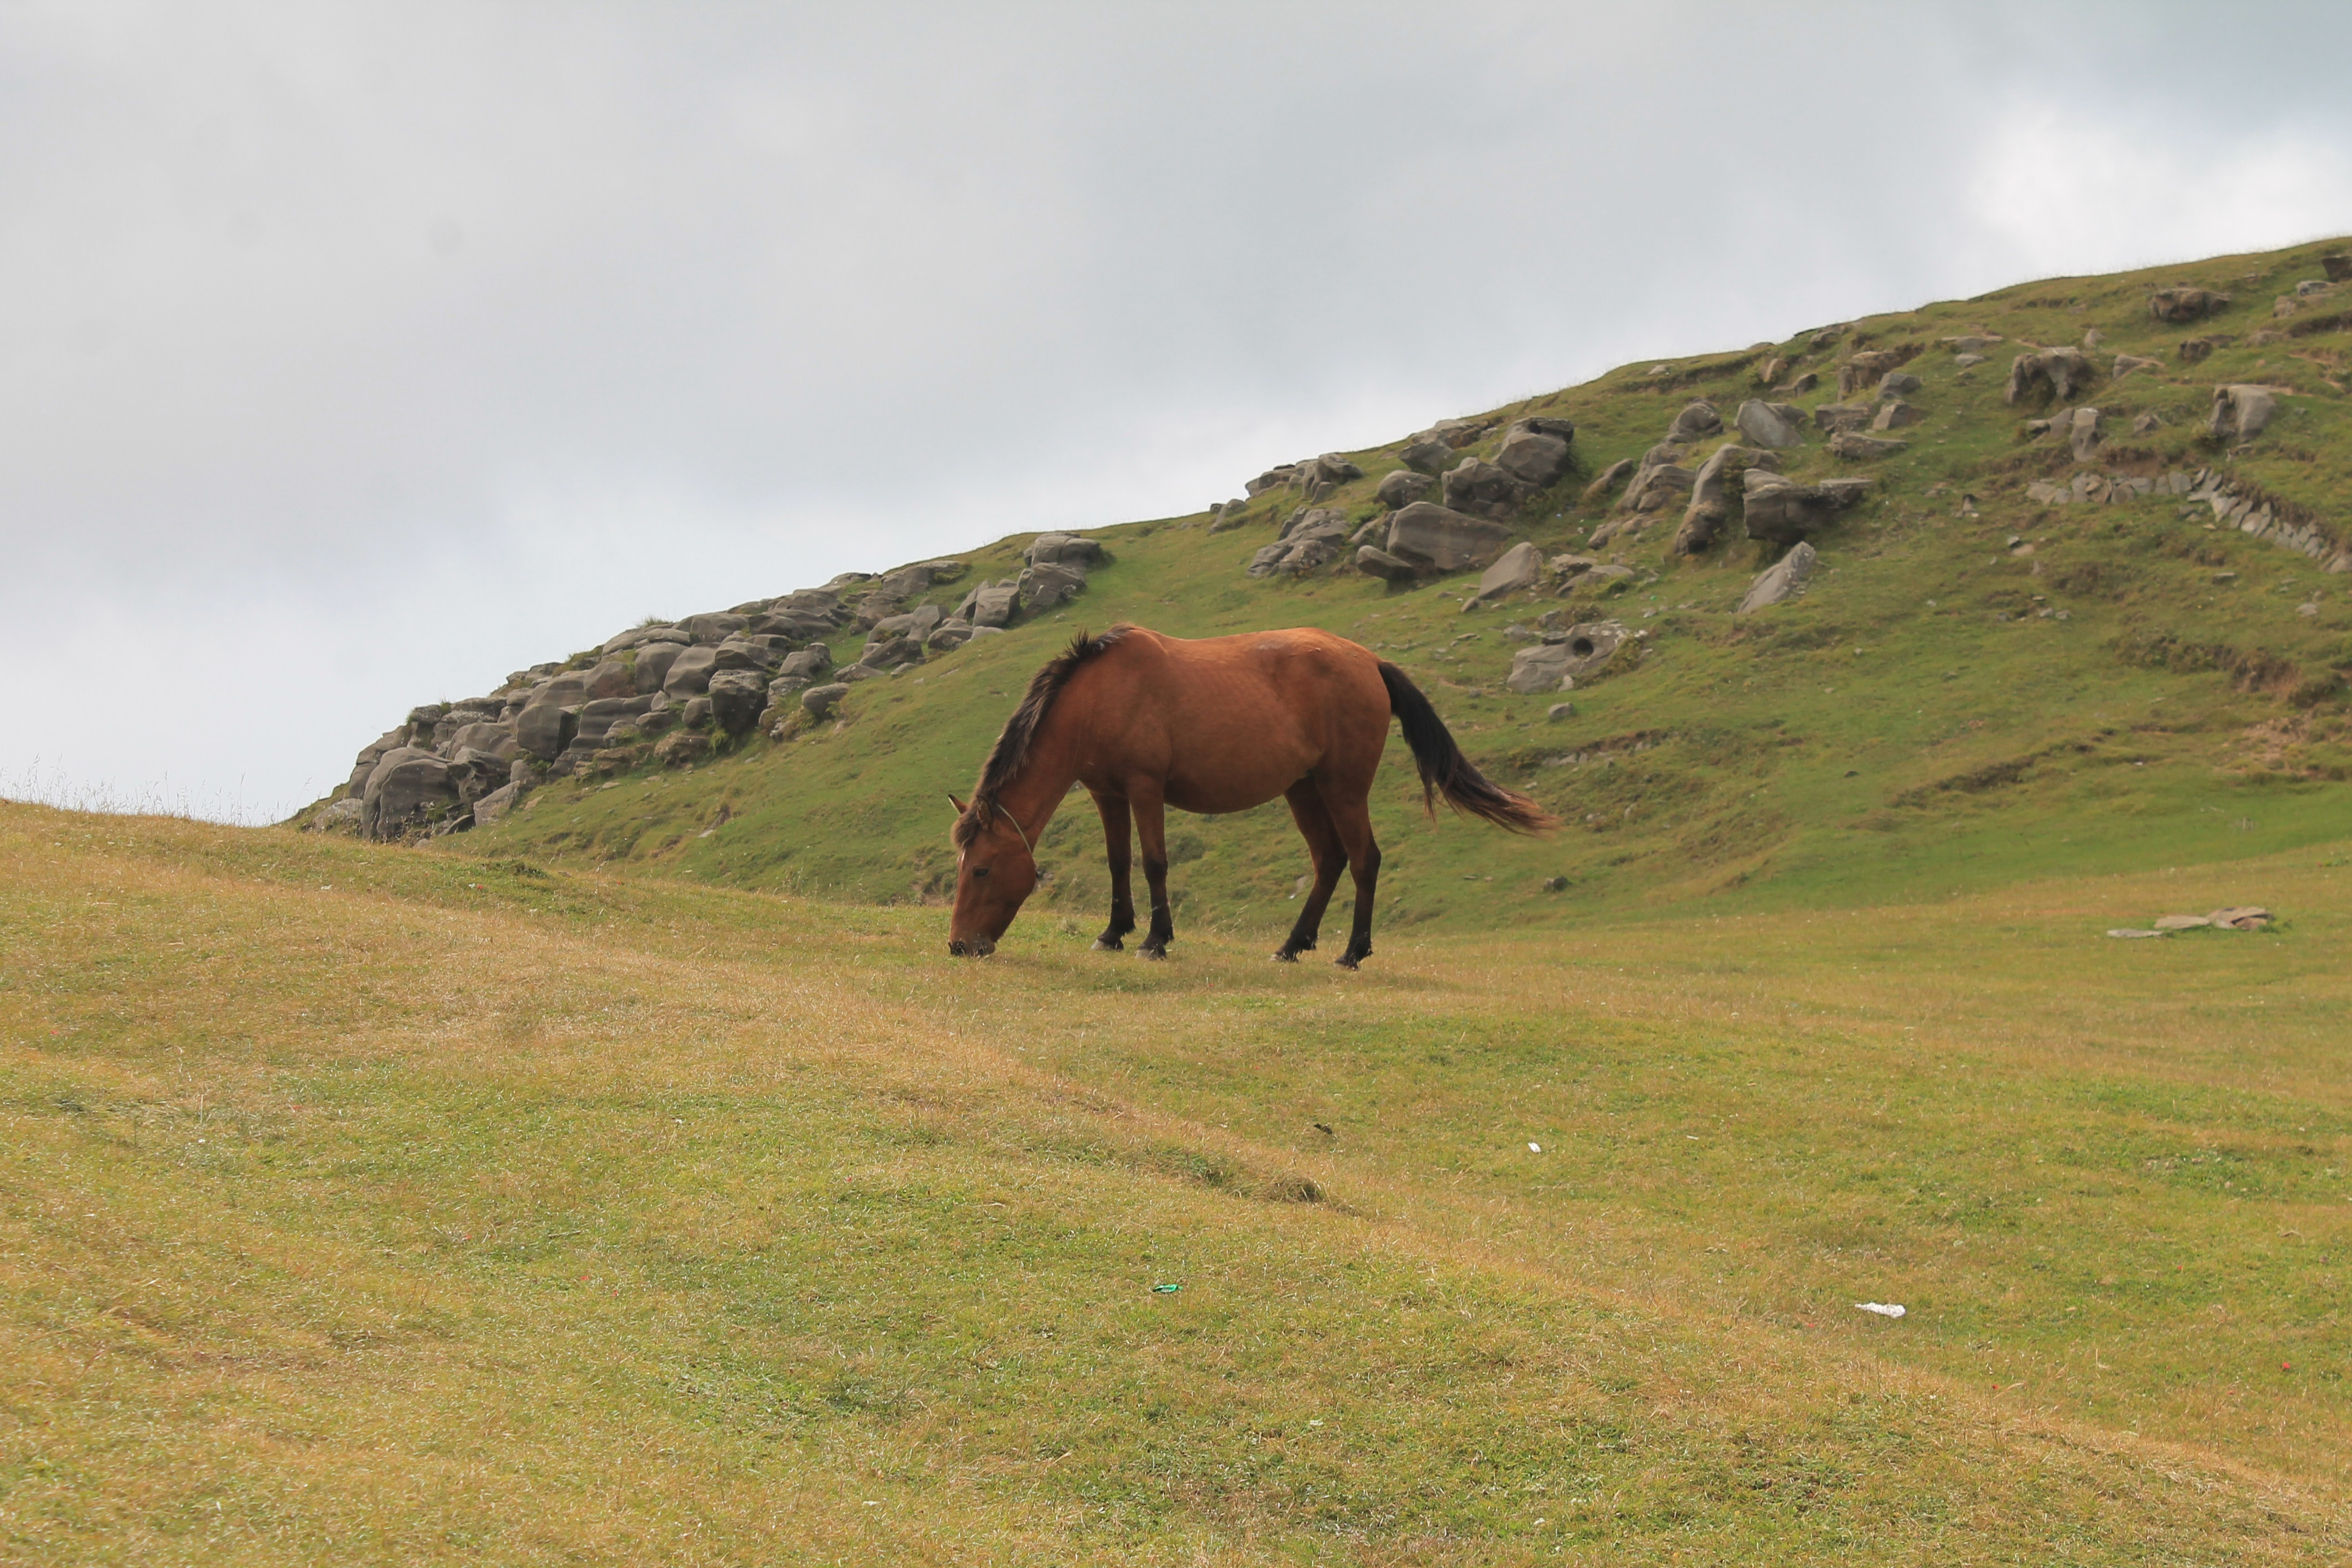 brown horse in middle of green grass field